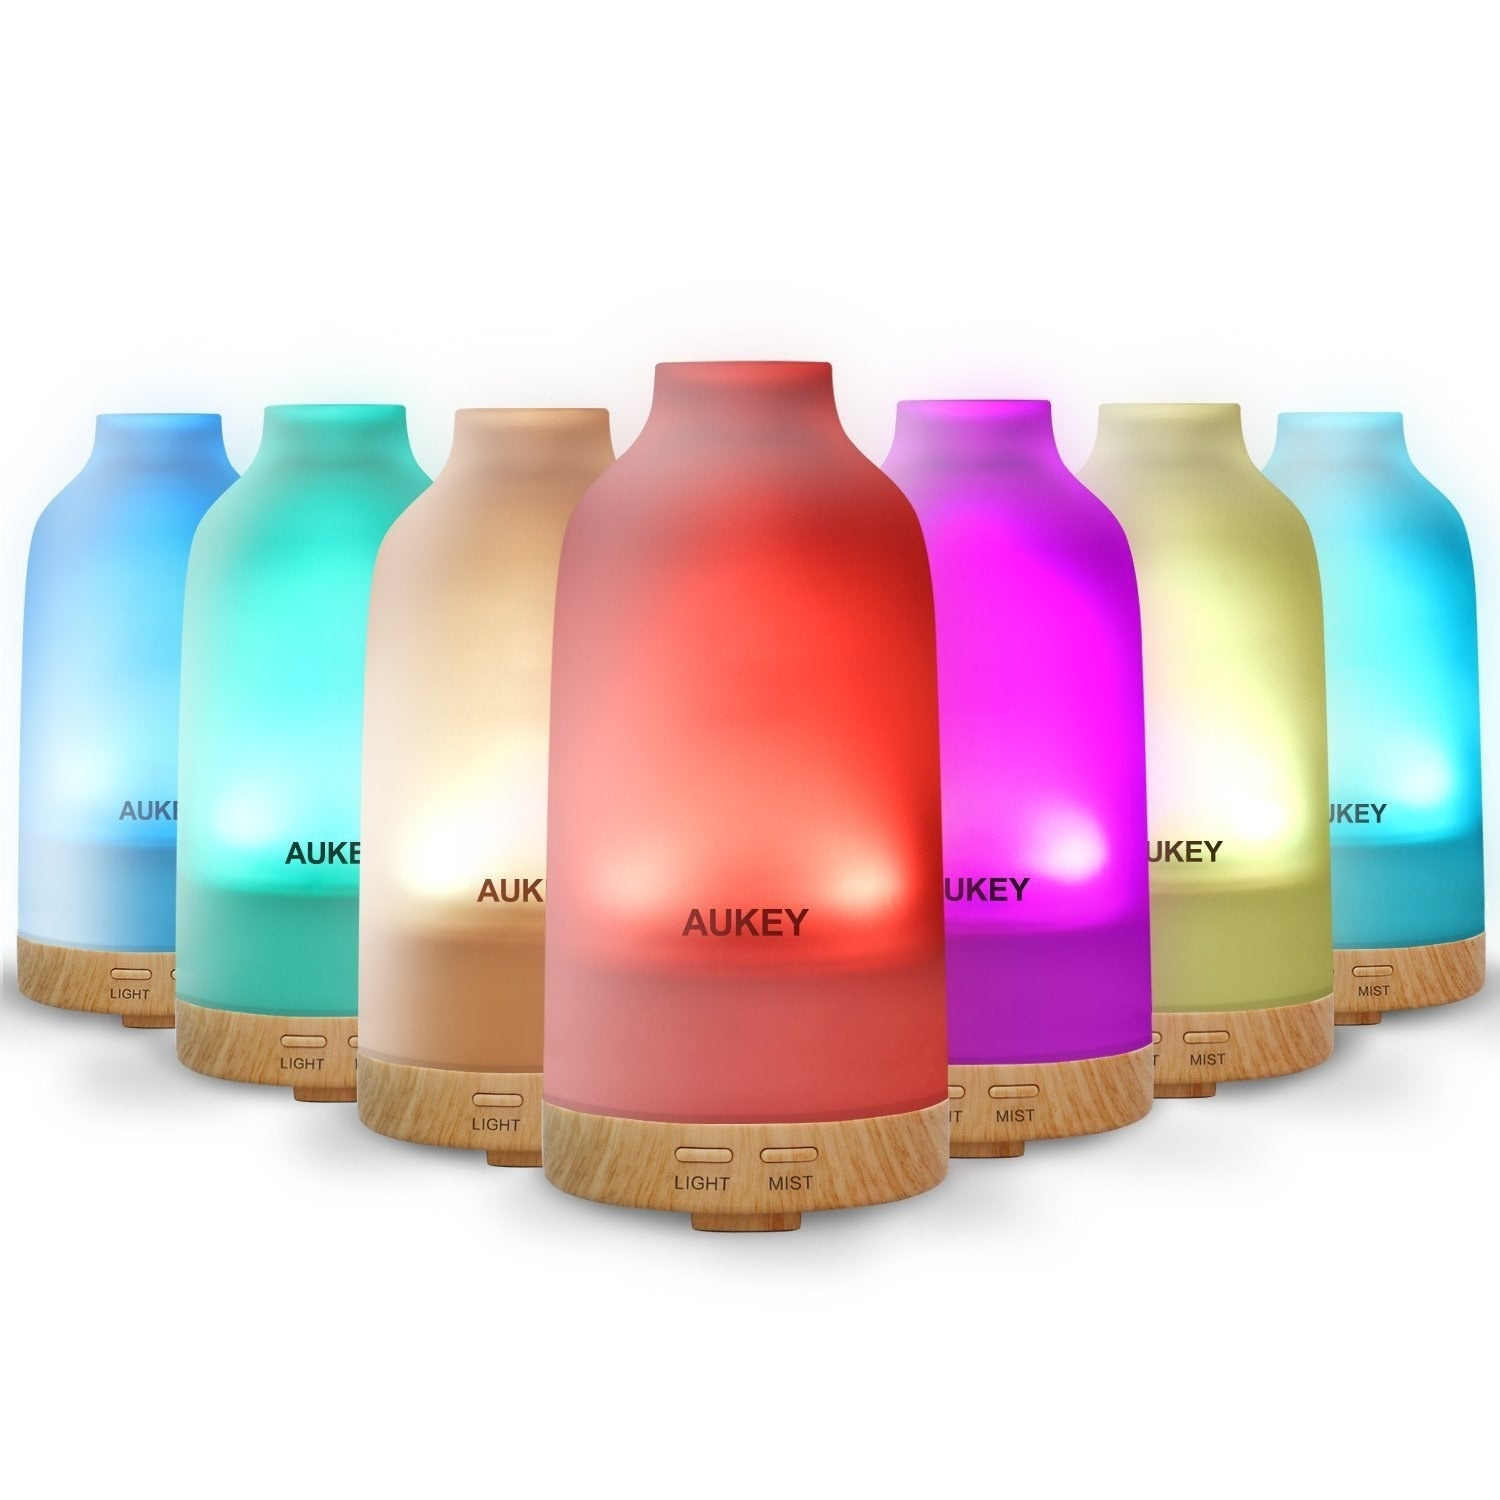 23. A humidifier/diffuser that can change into seven different colors. #B511BA